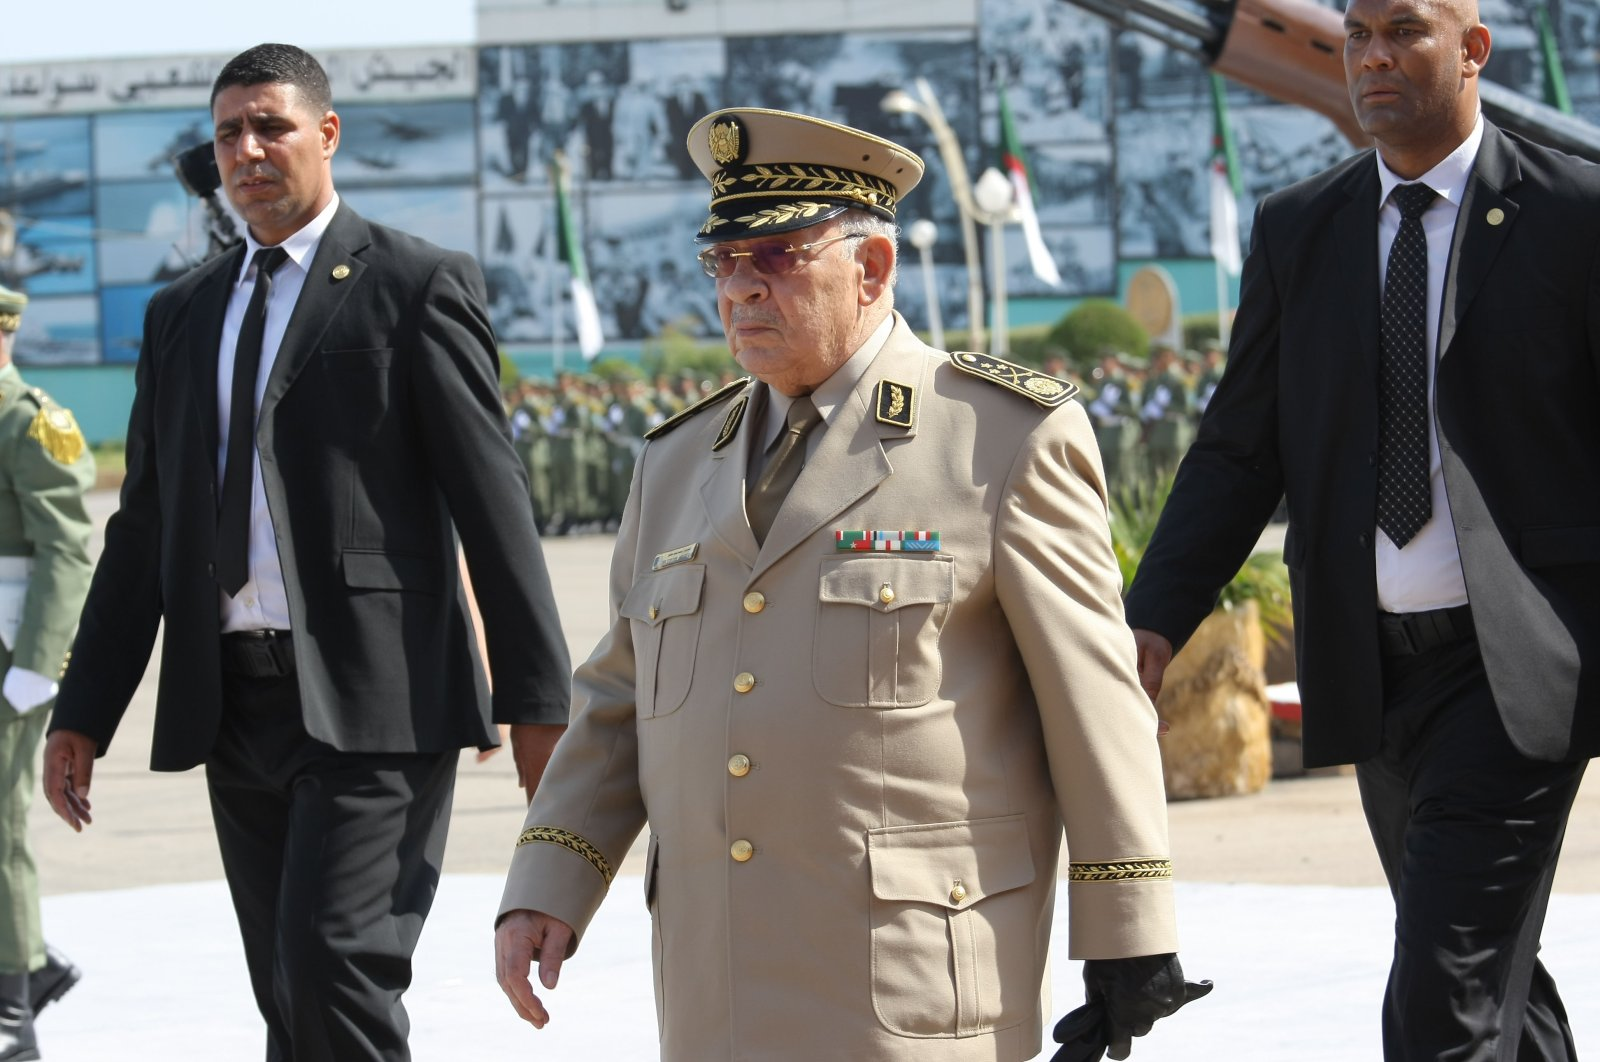 """Former Algerian Chief of Staff Gen. Ahmed Gaid Salah arrives to preside over a military parade at the Cherchell """"Houari Boumediene"""" in Algiers, Algeria, July 1, 2018. (AP Photo)"""